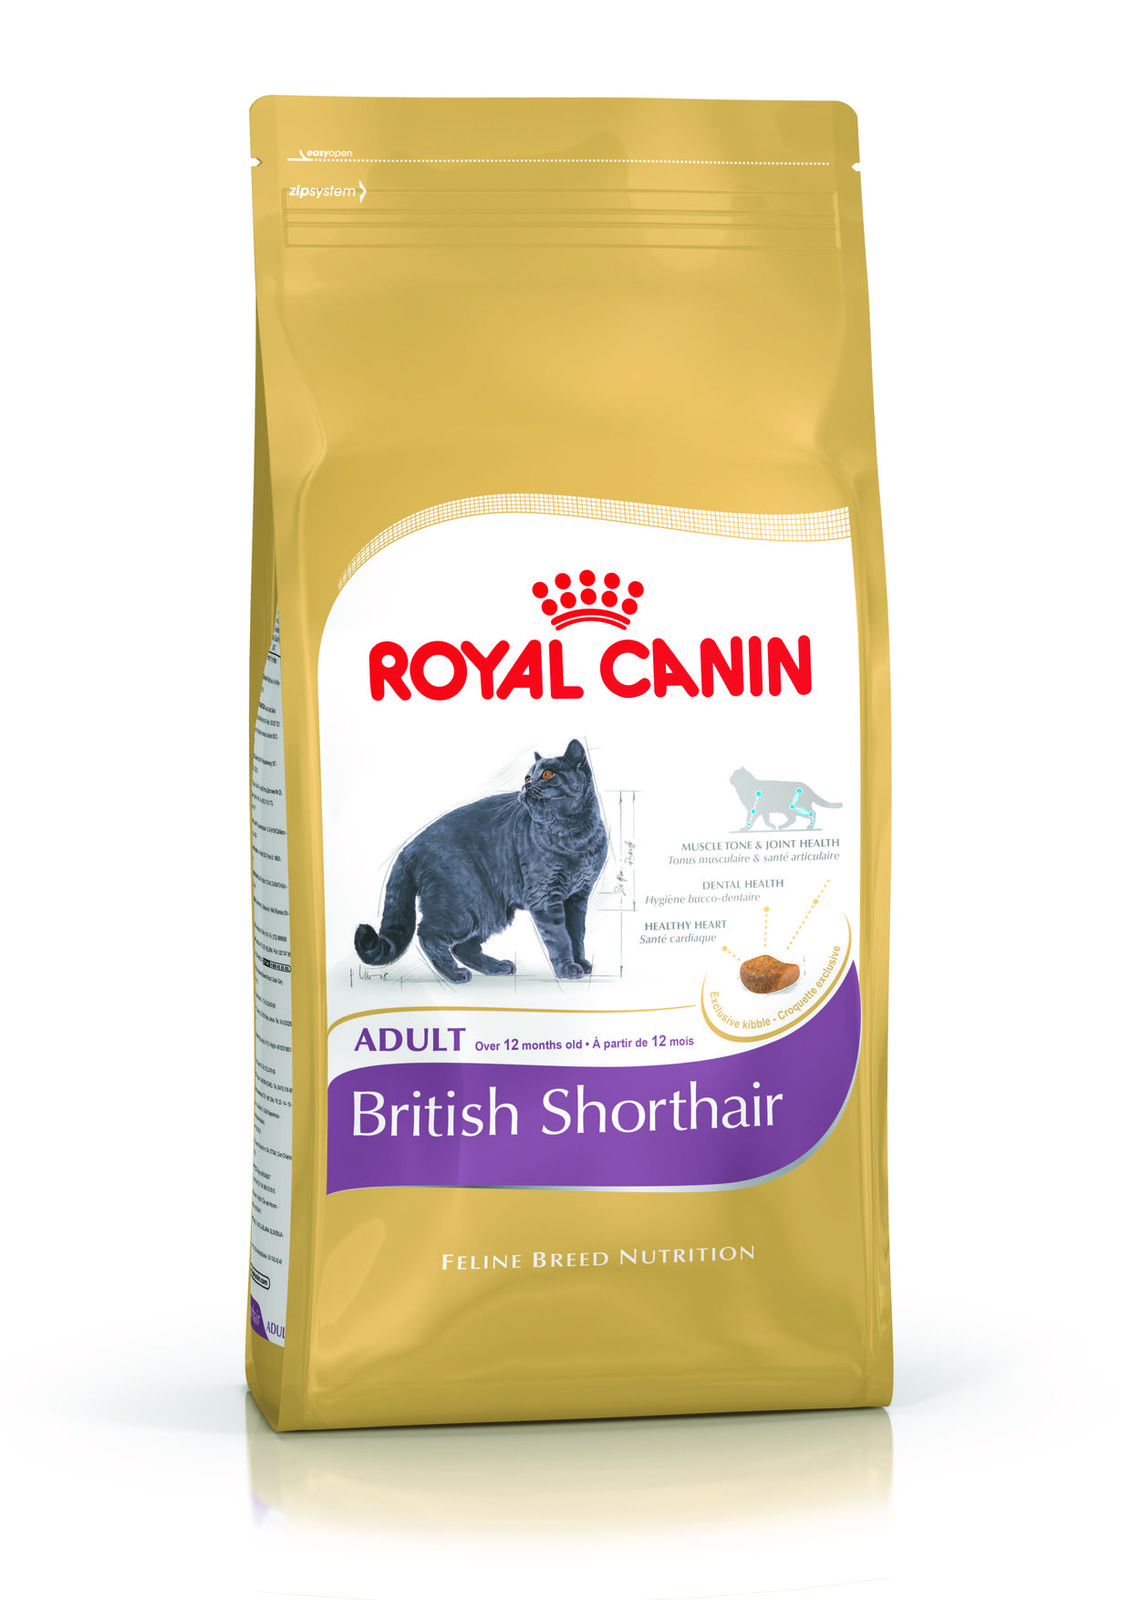 royal canin kitten wet food review